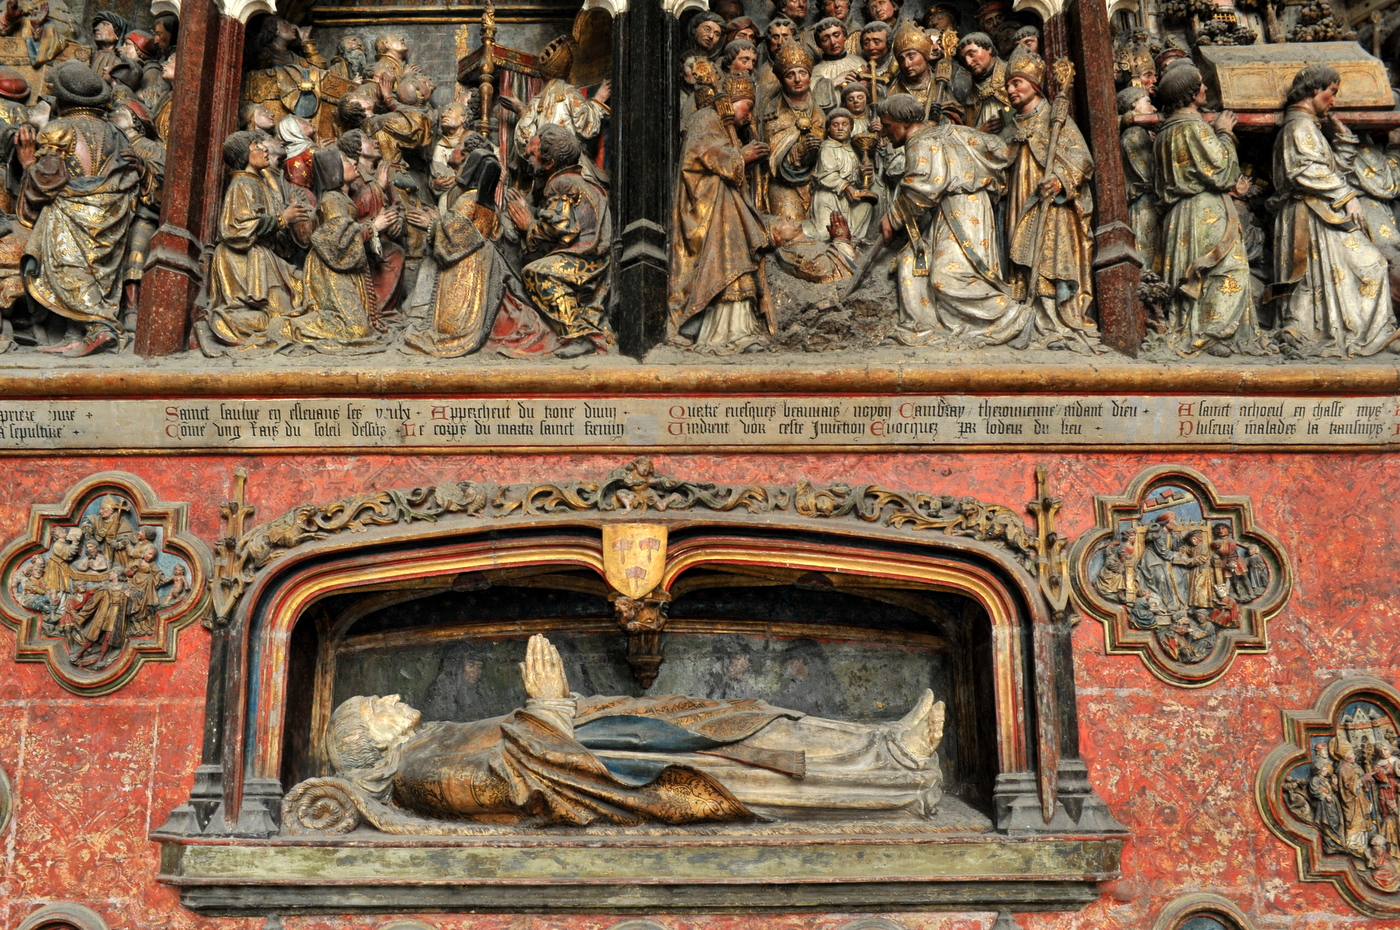 1530 (estimated by date of subject's death) - Gisant d'Adrien de Hénencourt - Cathédrale d'Amiens - http://www.flickr.com/photos/biron-philippe/6276741341/